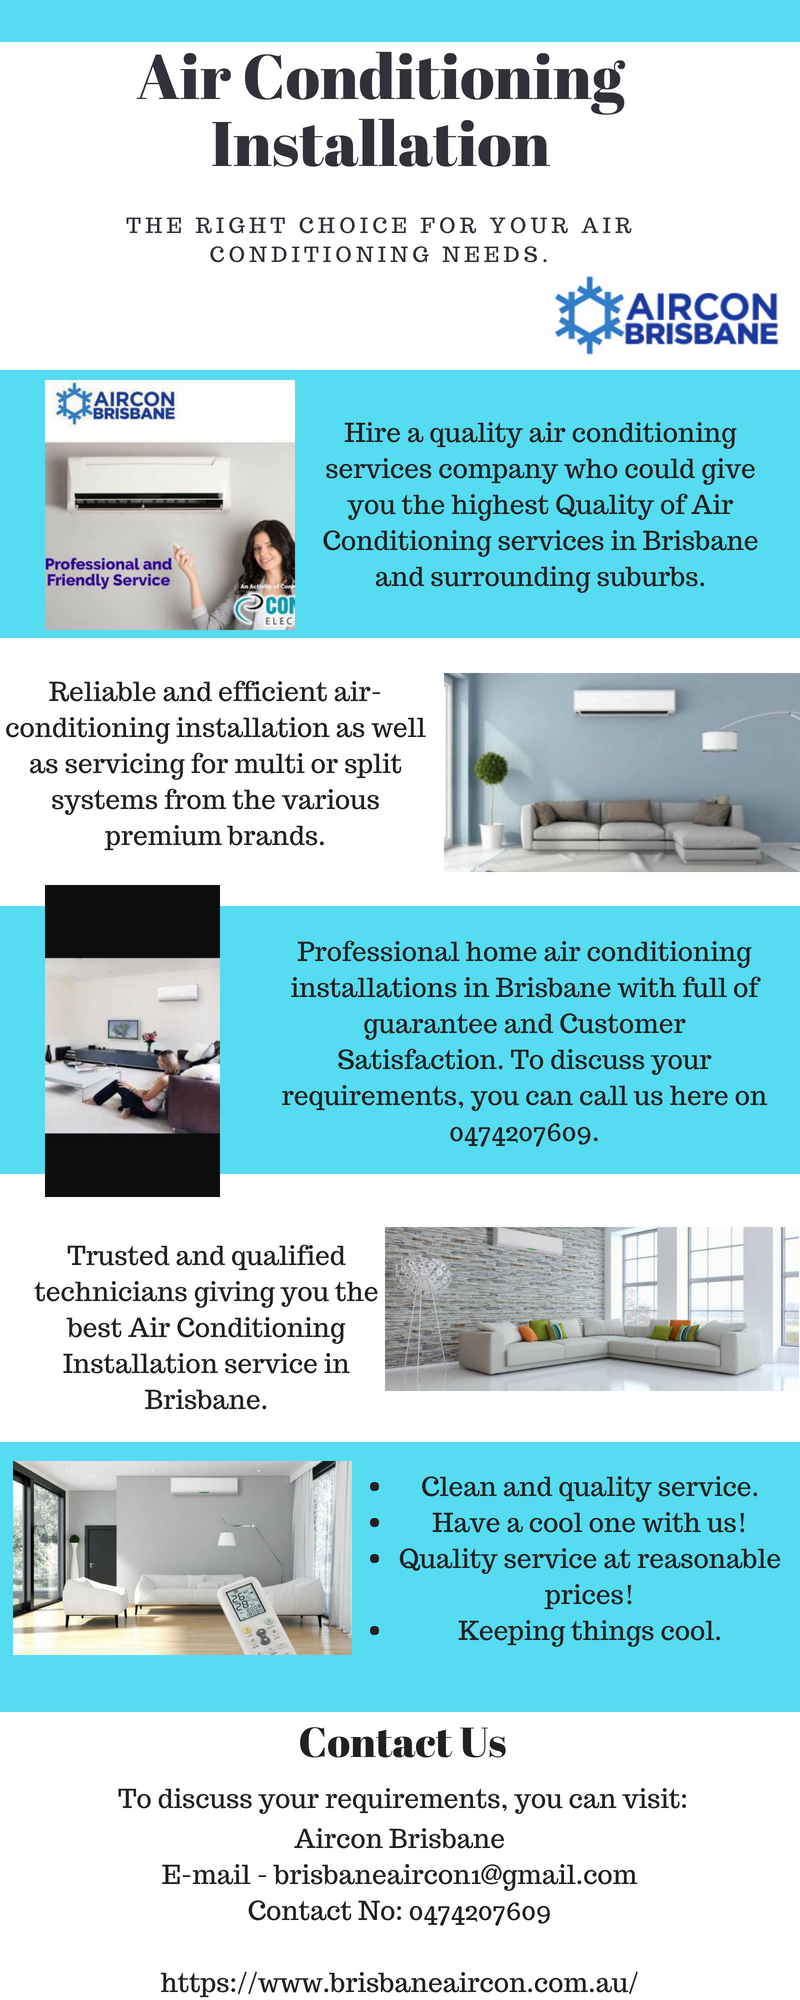 Aircon Brisbane is experts in AirConditioningInstallation